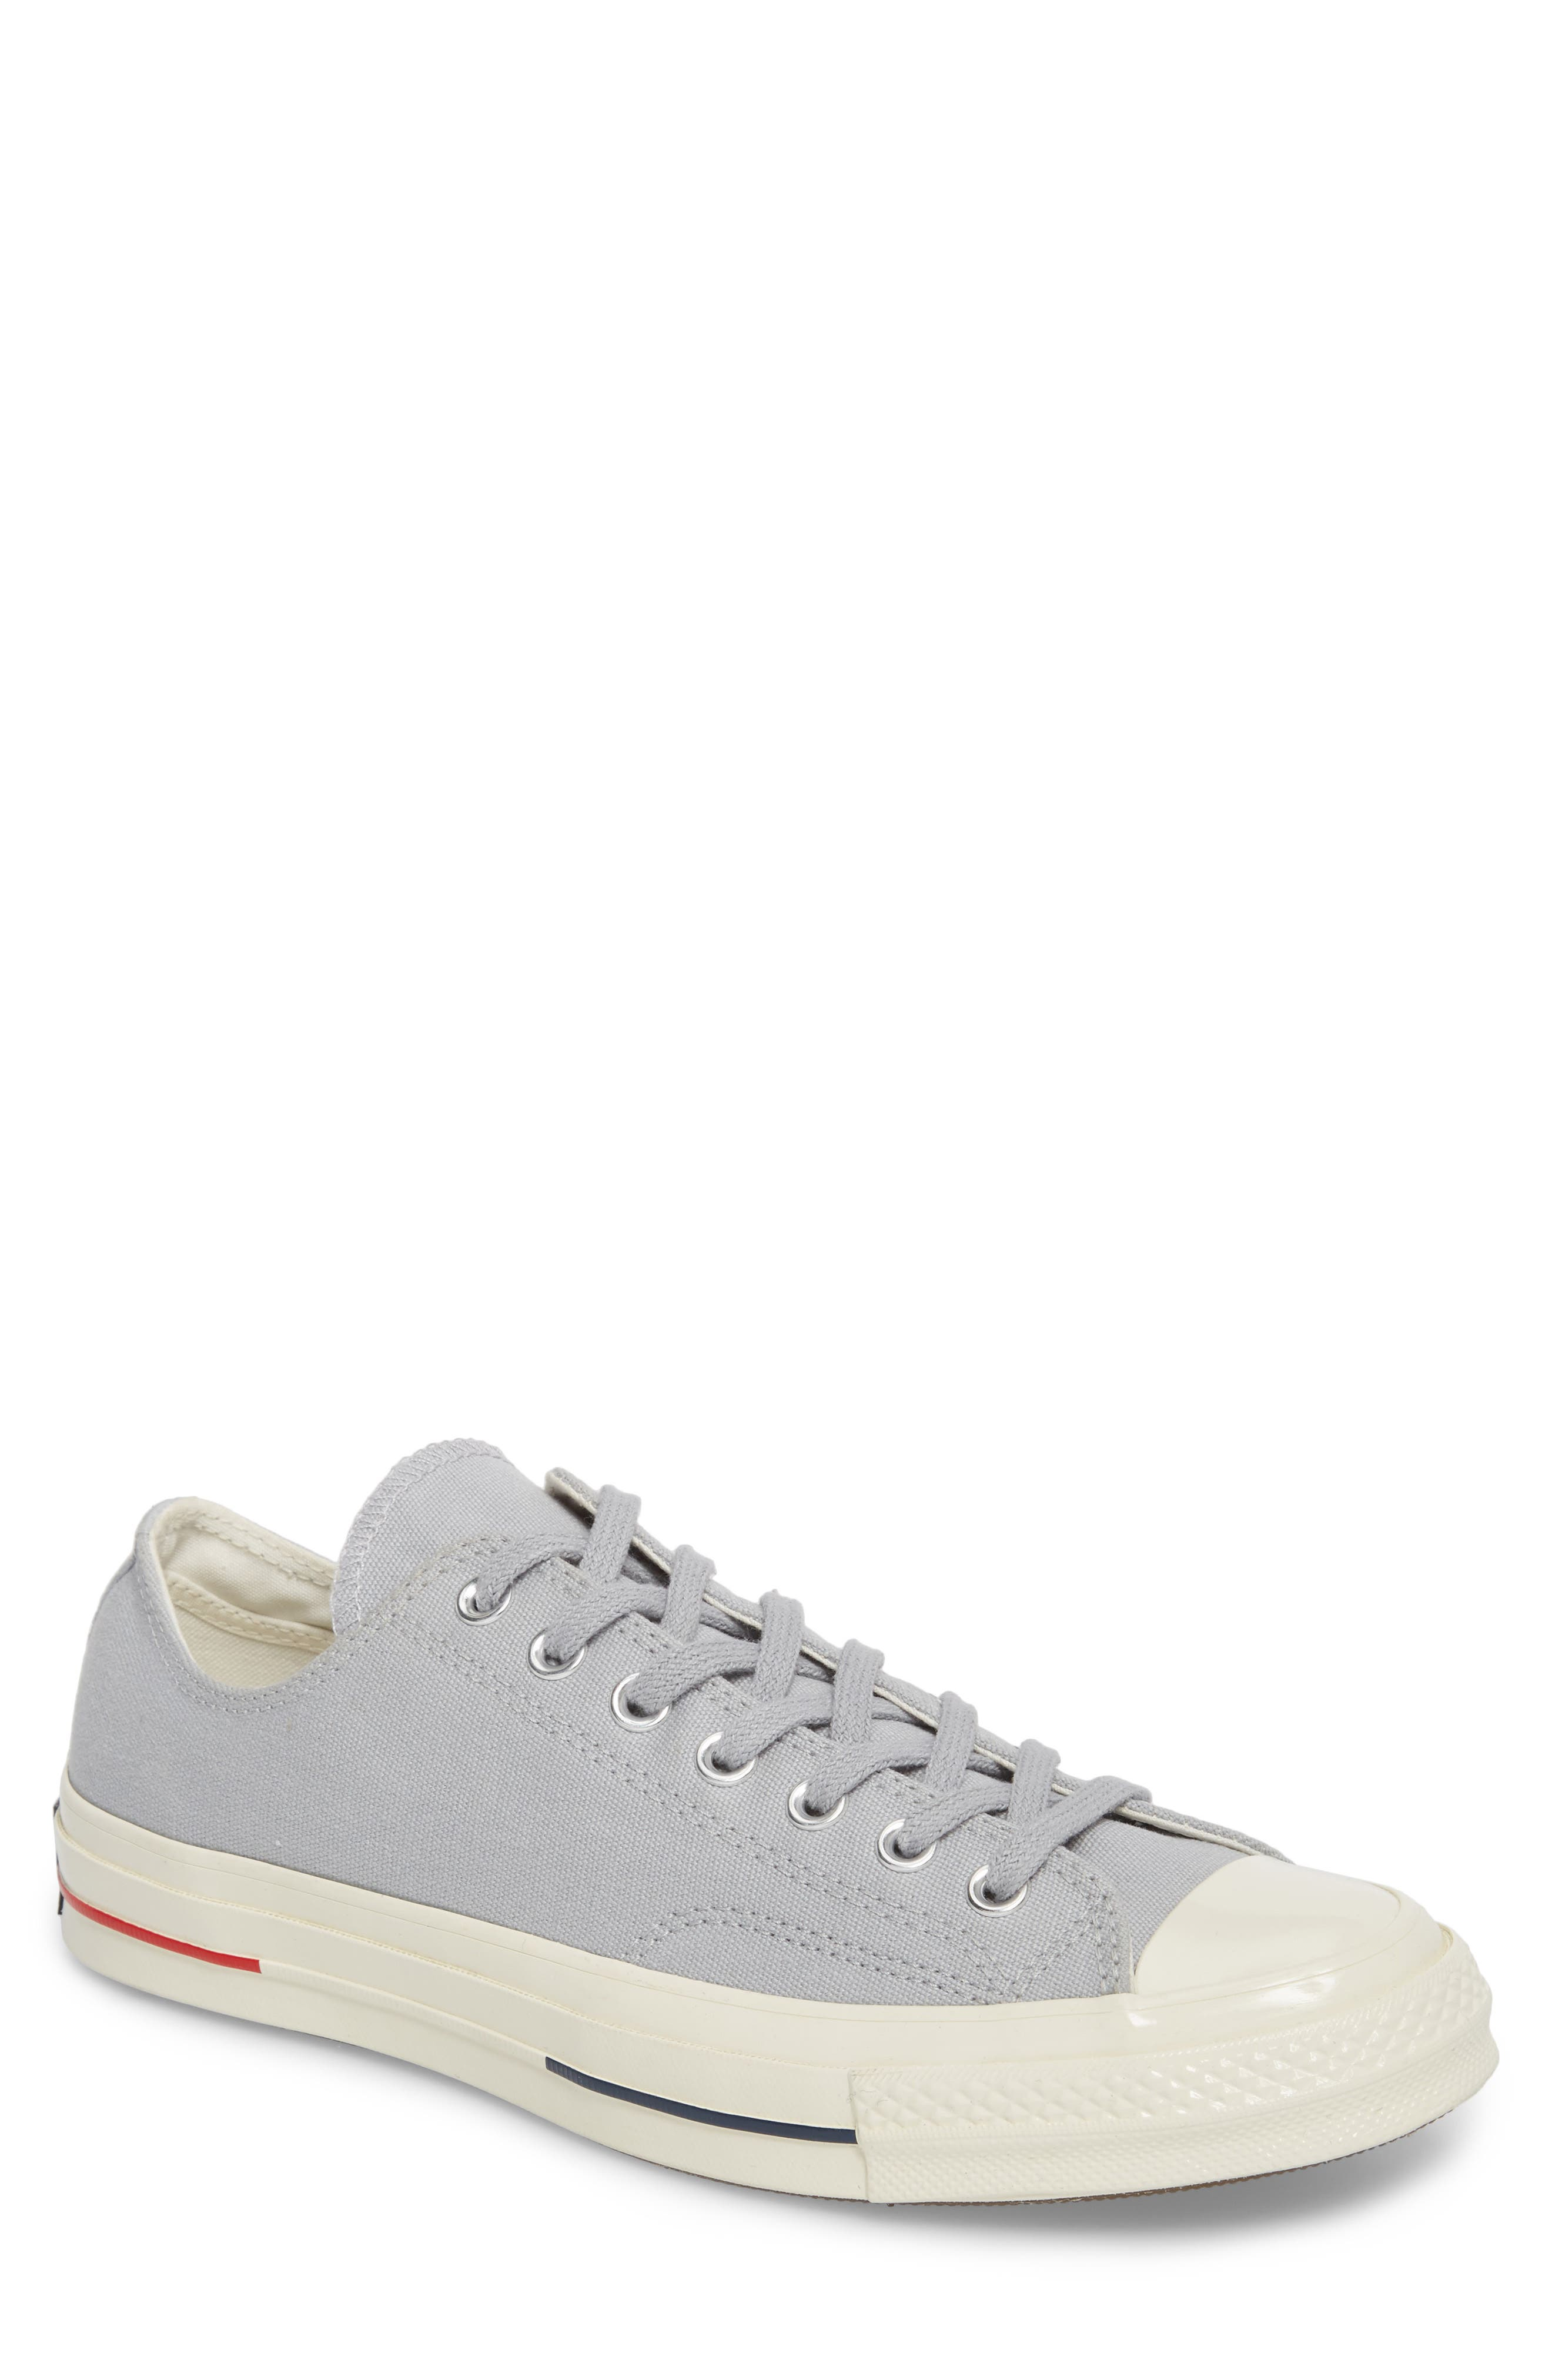 Chuck Taylor<sup>®</sup> All Star<sup>®</sup> 70 Heritage Low Top Sneaker,                             Main thumbnail 1, color,                             Wolf Grey